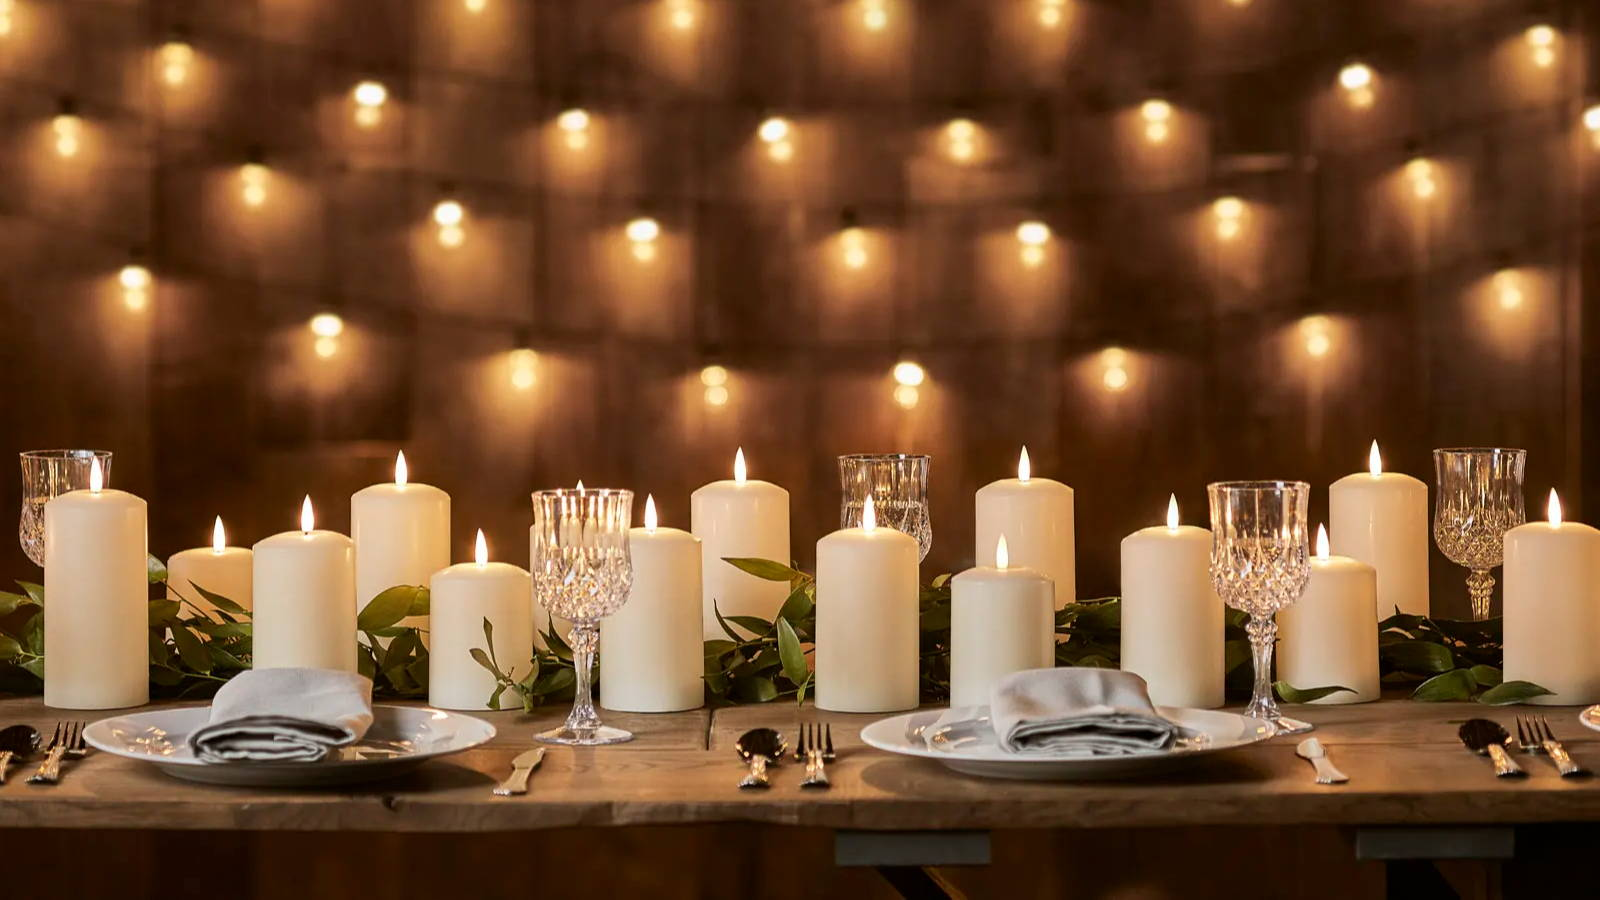 TruGlow pillar candles illuminated as part of table centrepiece with foliage distributed in and around them